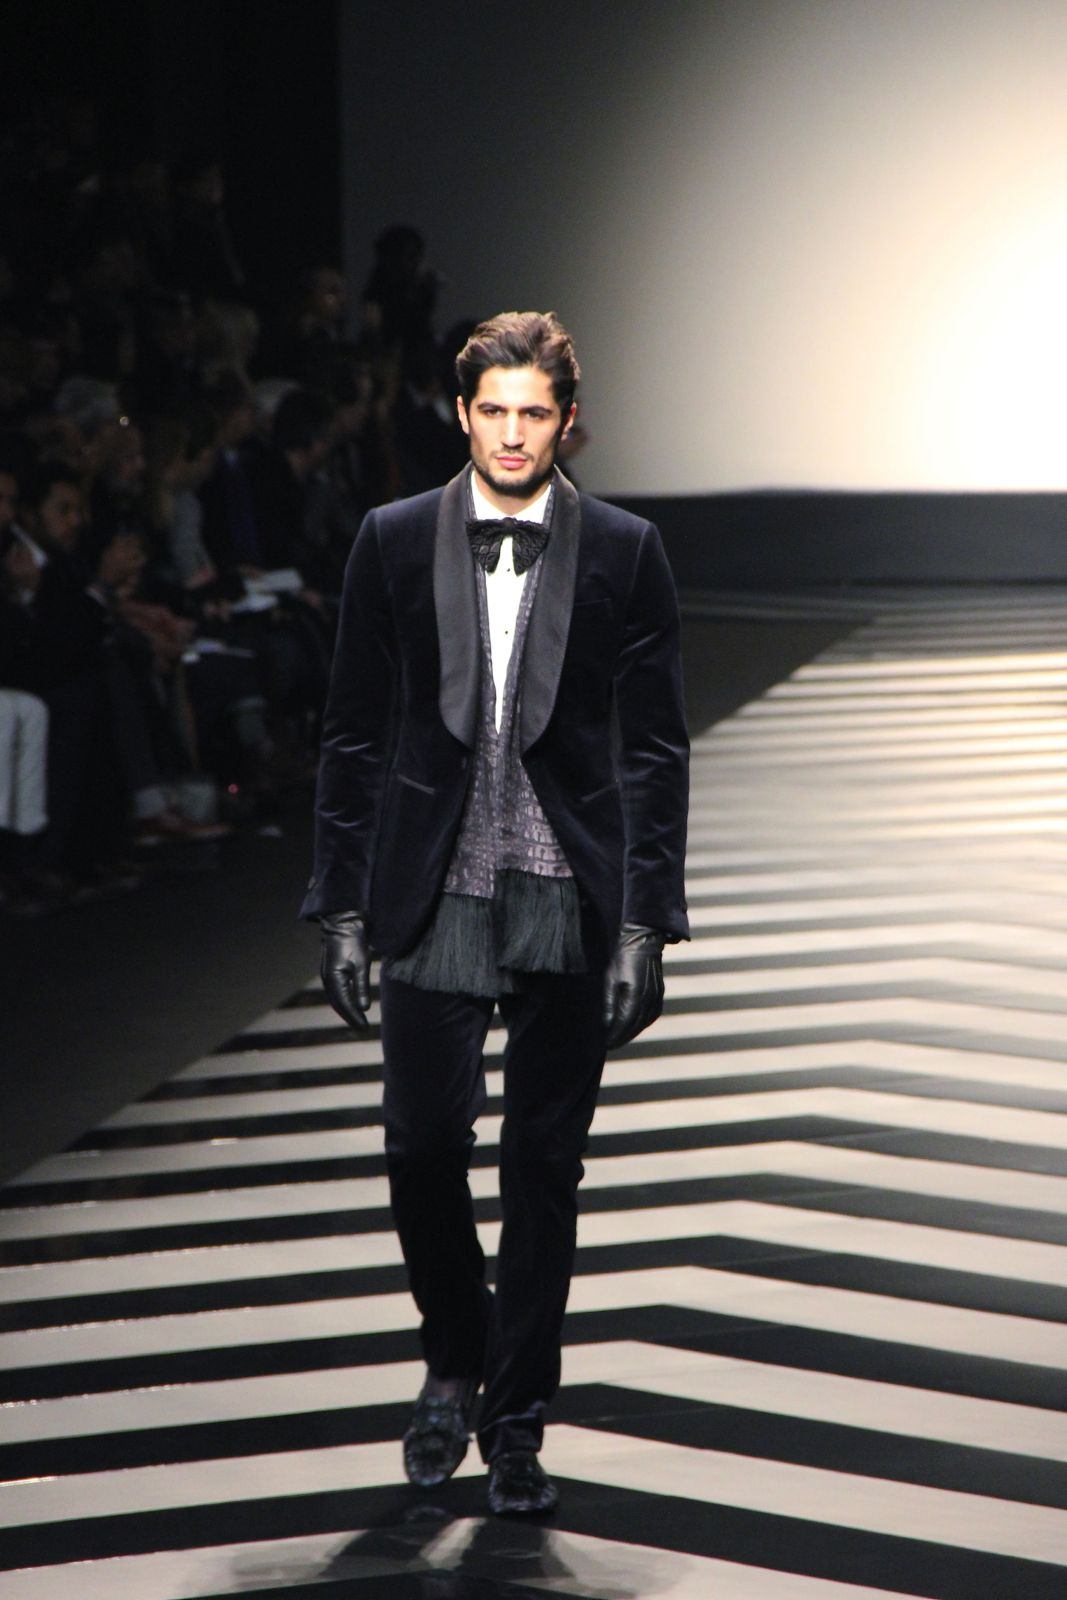 Roberto Cavalli Fall Winter 2012-13 Men's Collection Milano Fashion Week